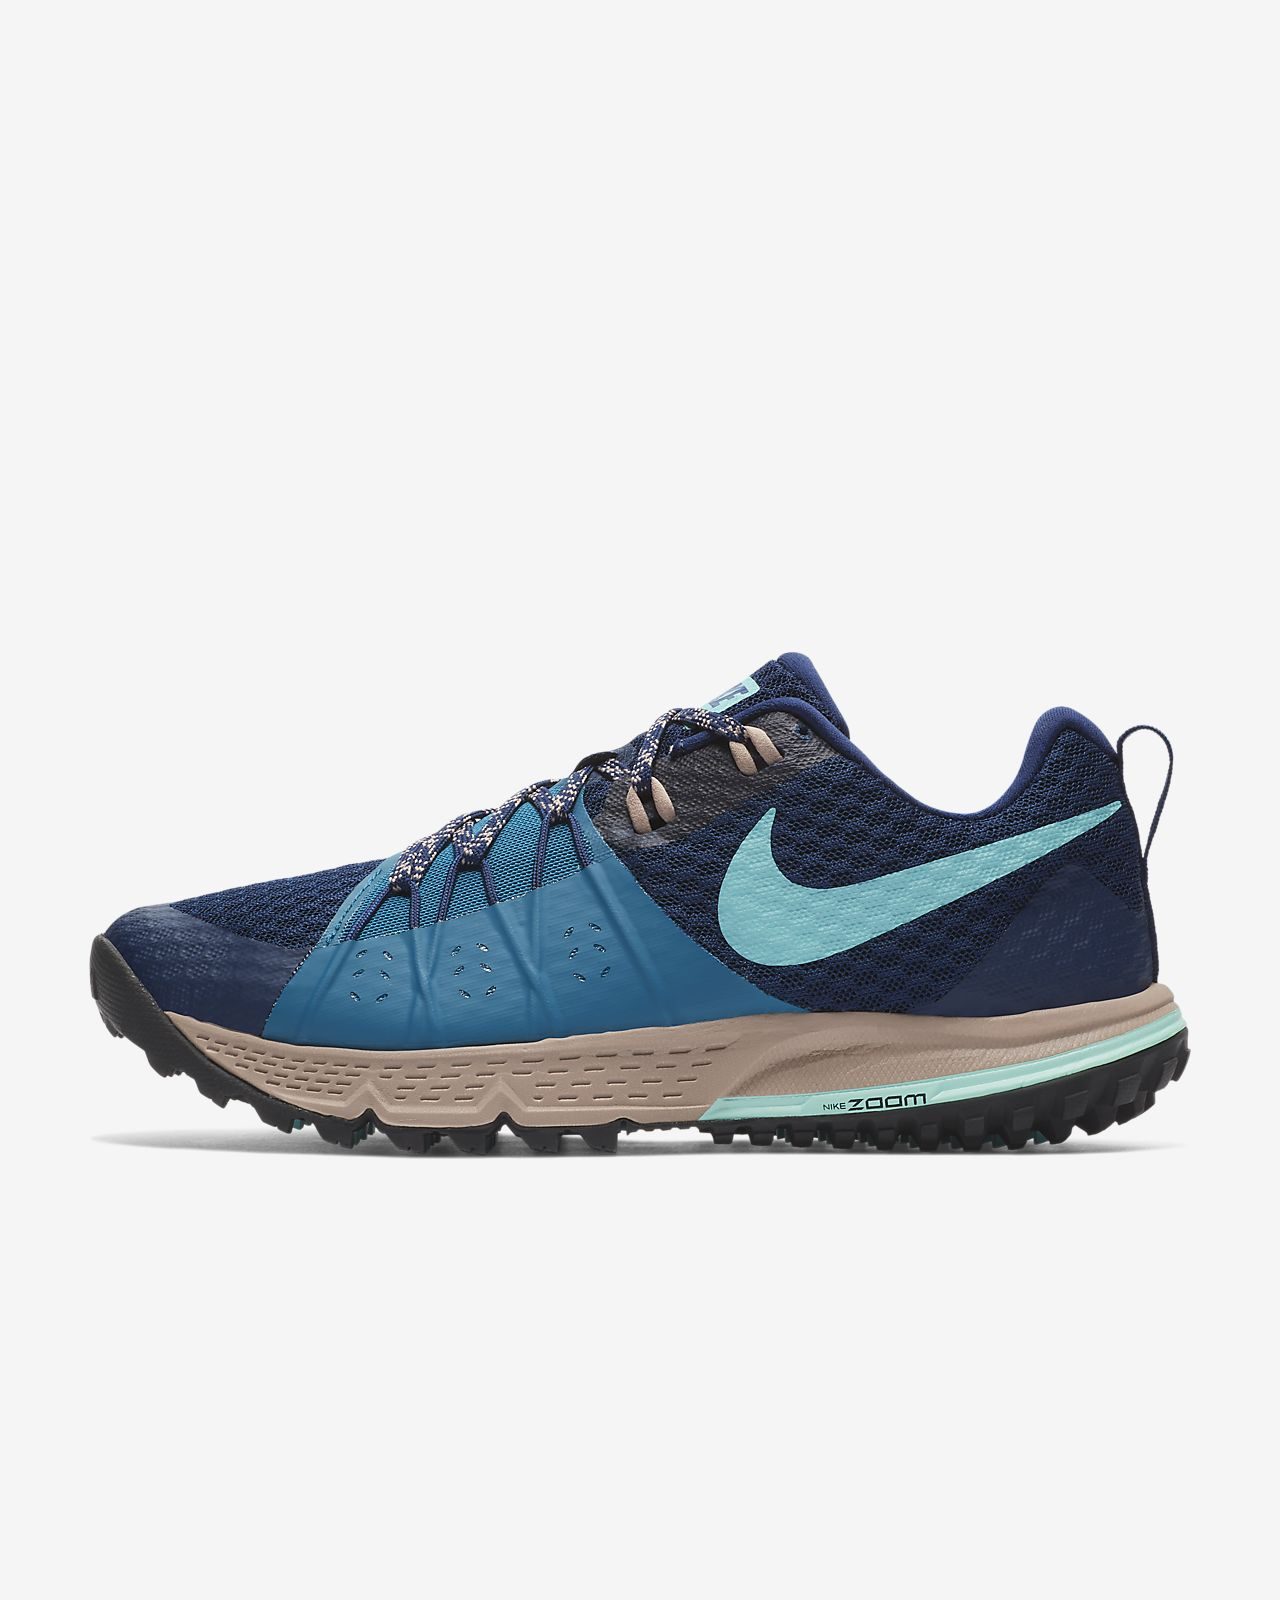 afd93d0ad4d Nike Air Zoom Wildhorse 4 Women s Running Shoe. Nike.com